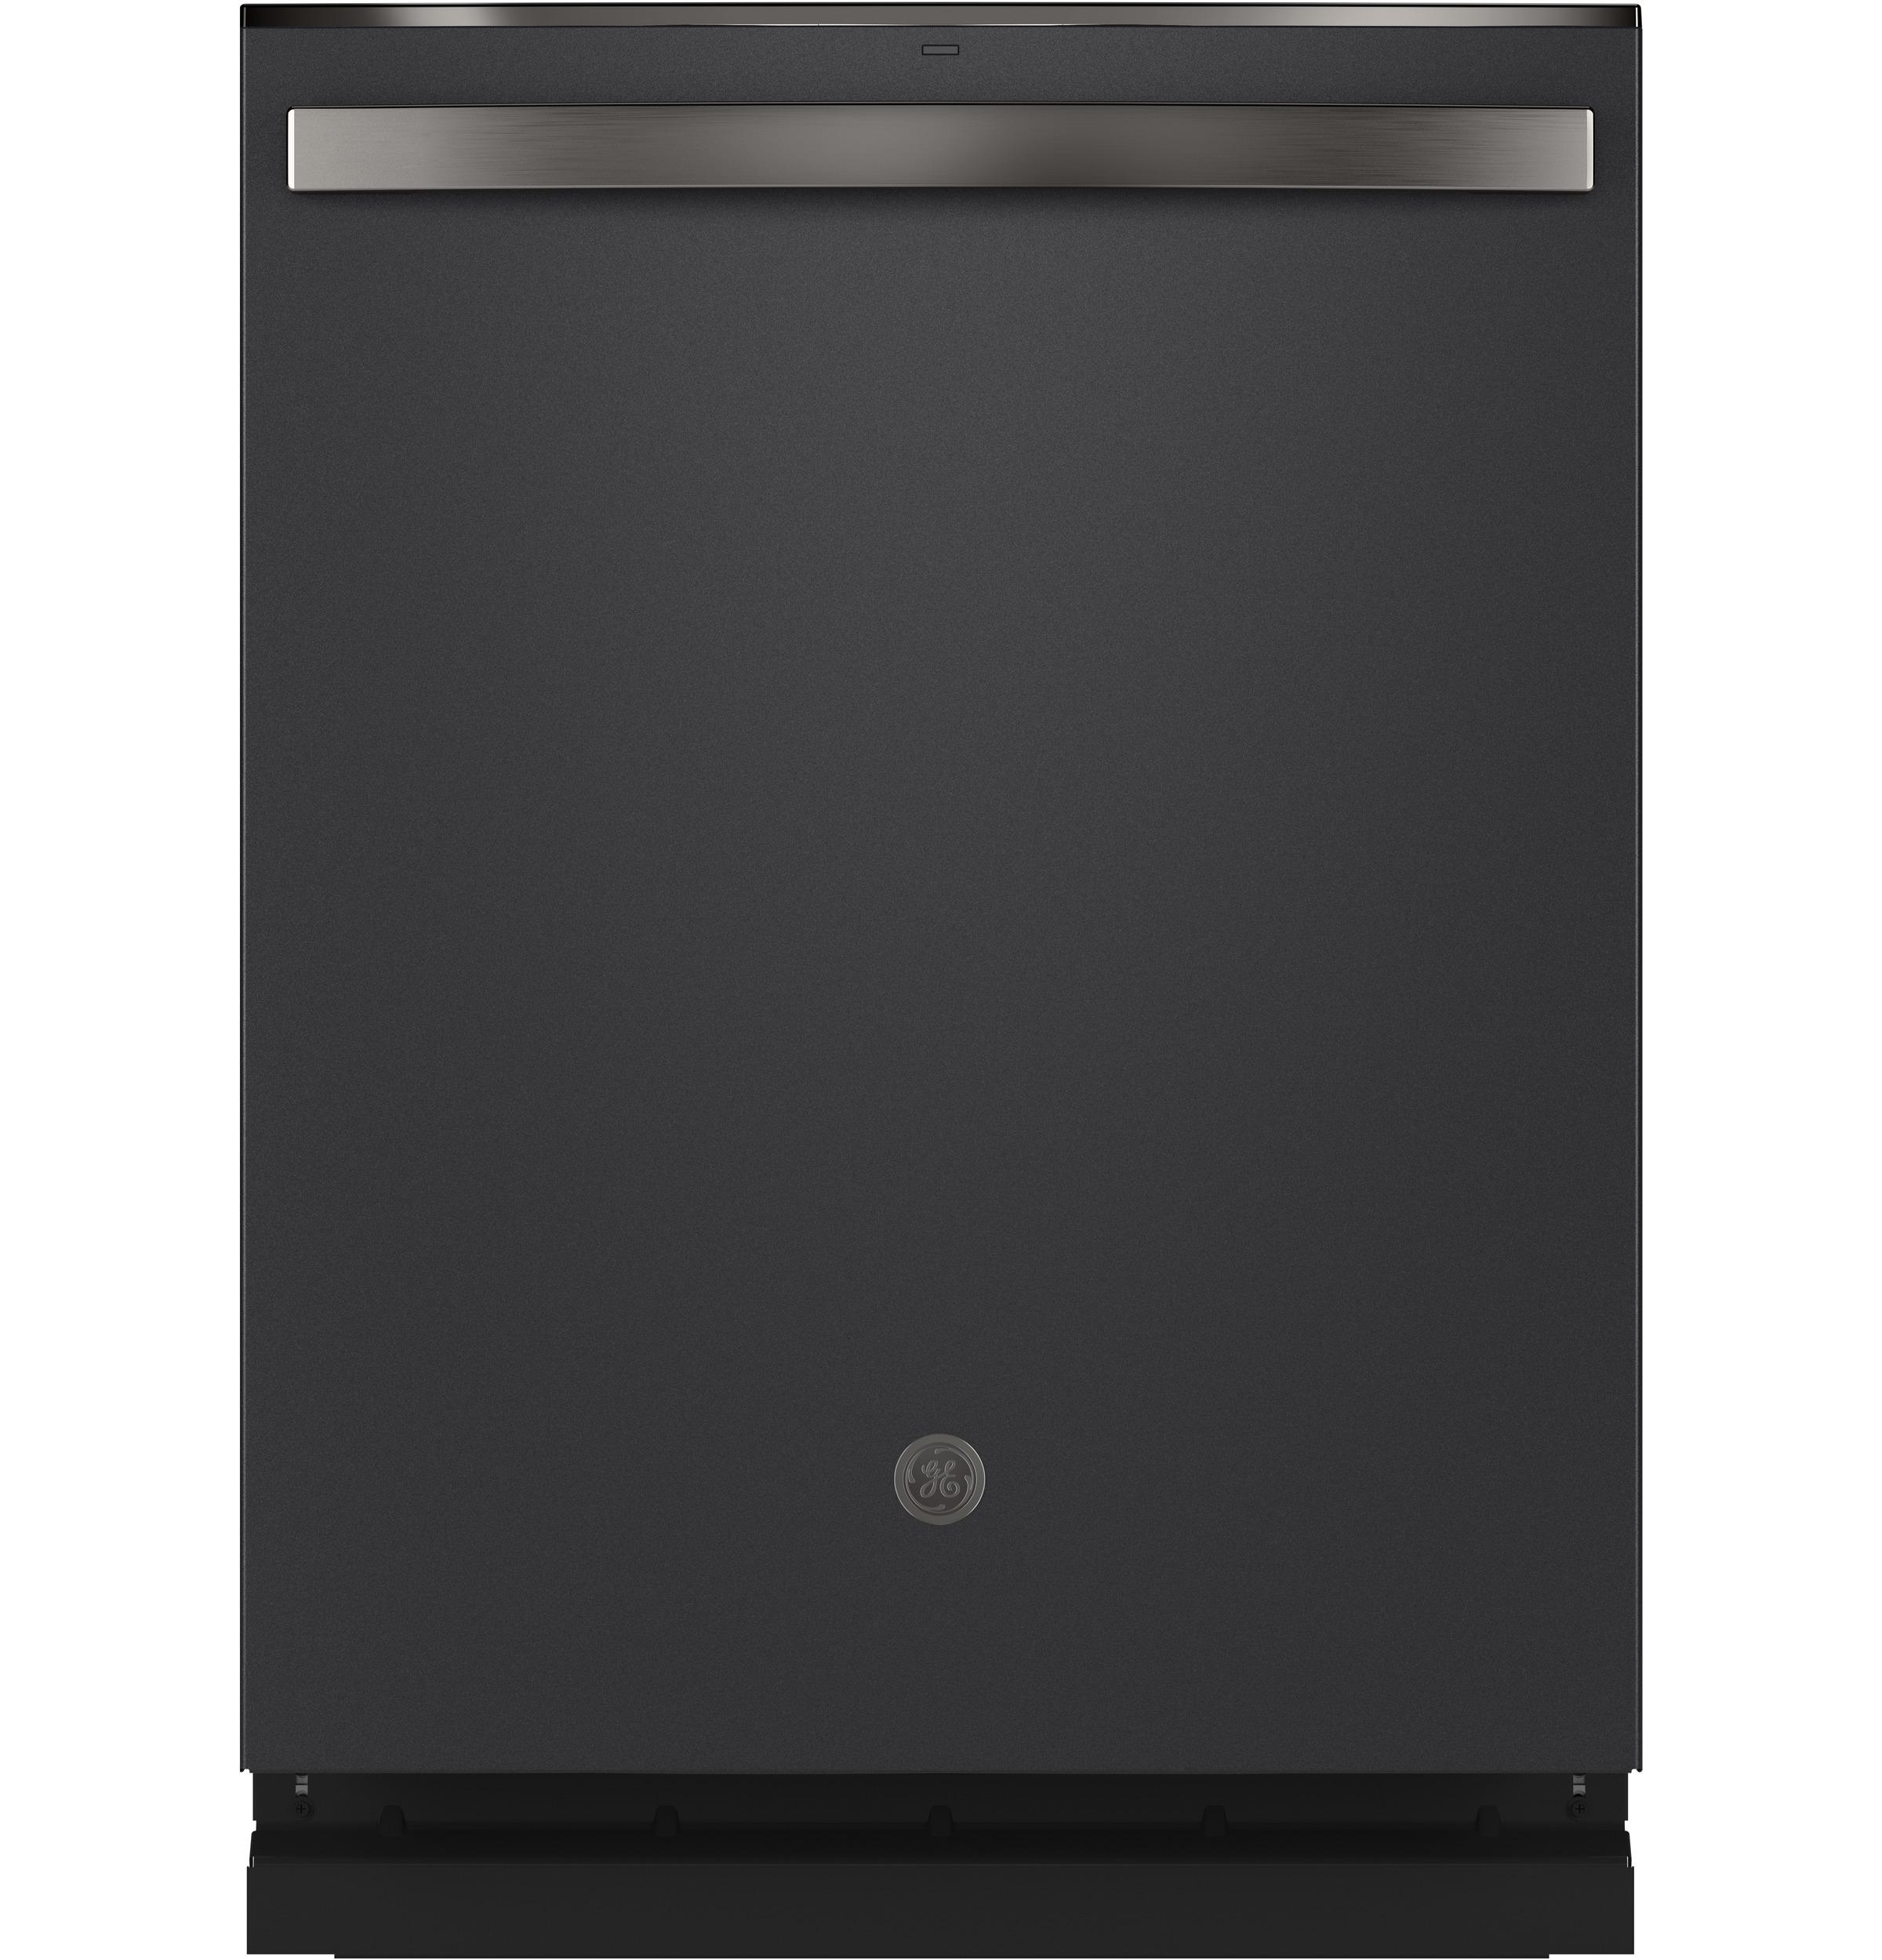 Model: GDT645SFNDS | GE GE® Top Control with Stainless Steel Interior Dishwasher with Sanitize Cycle & Dry Boost with Fan Assist